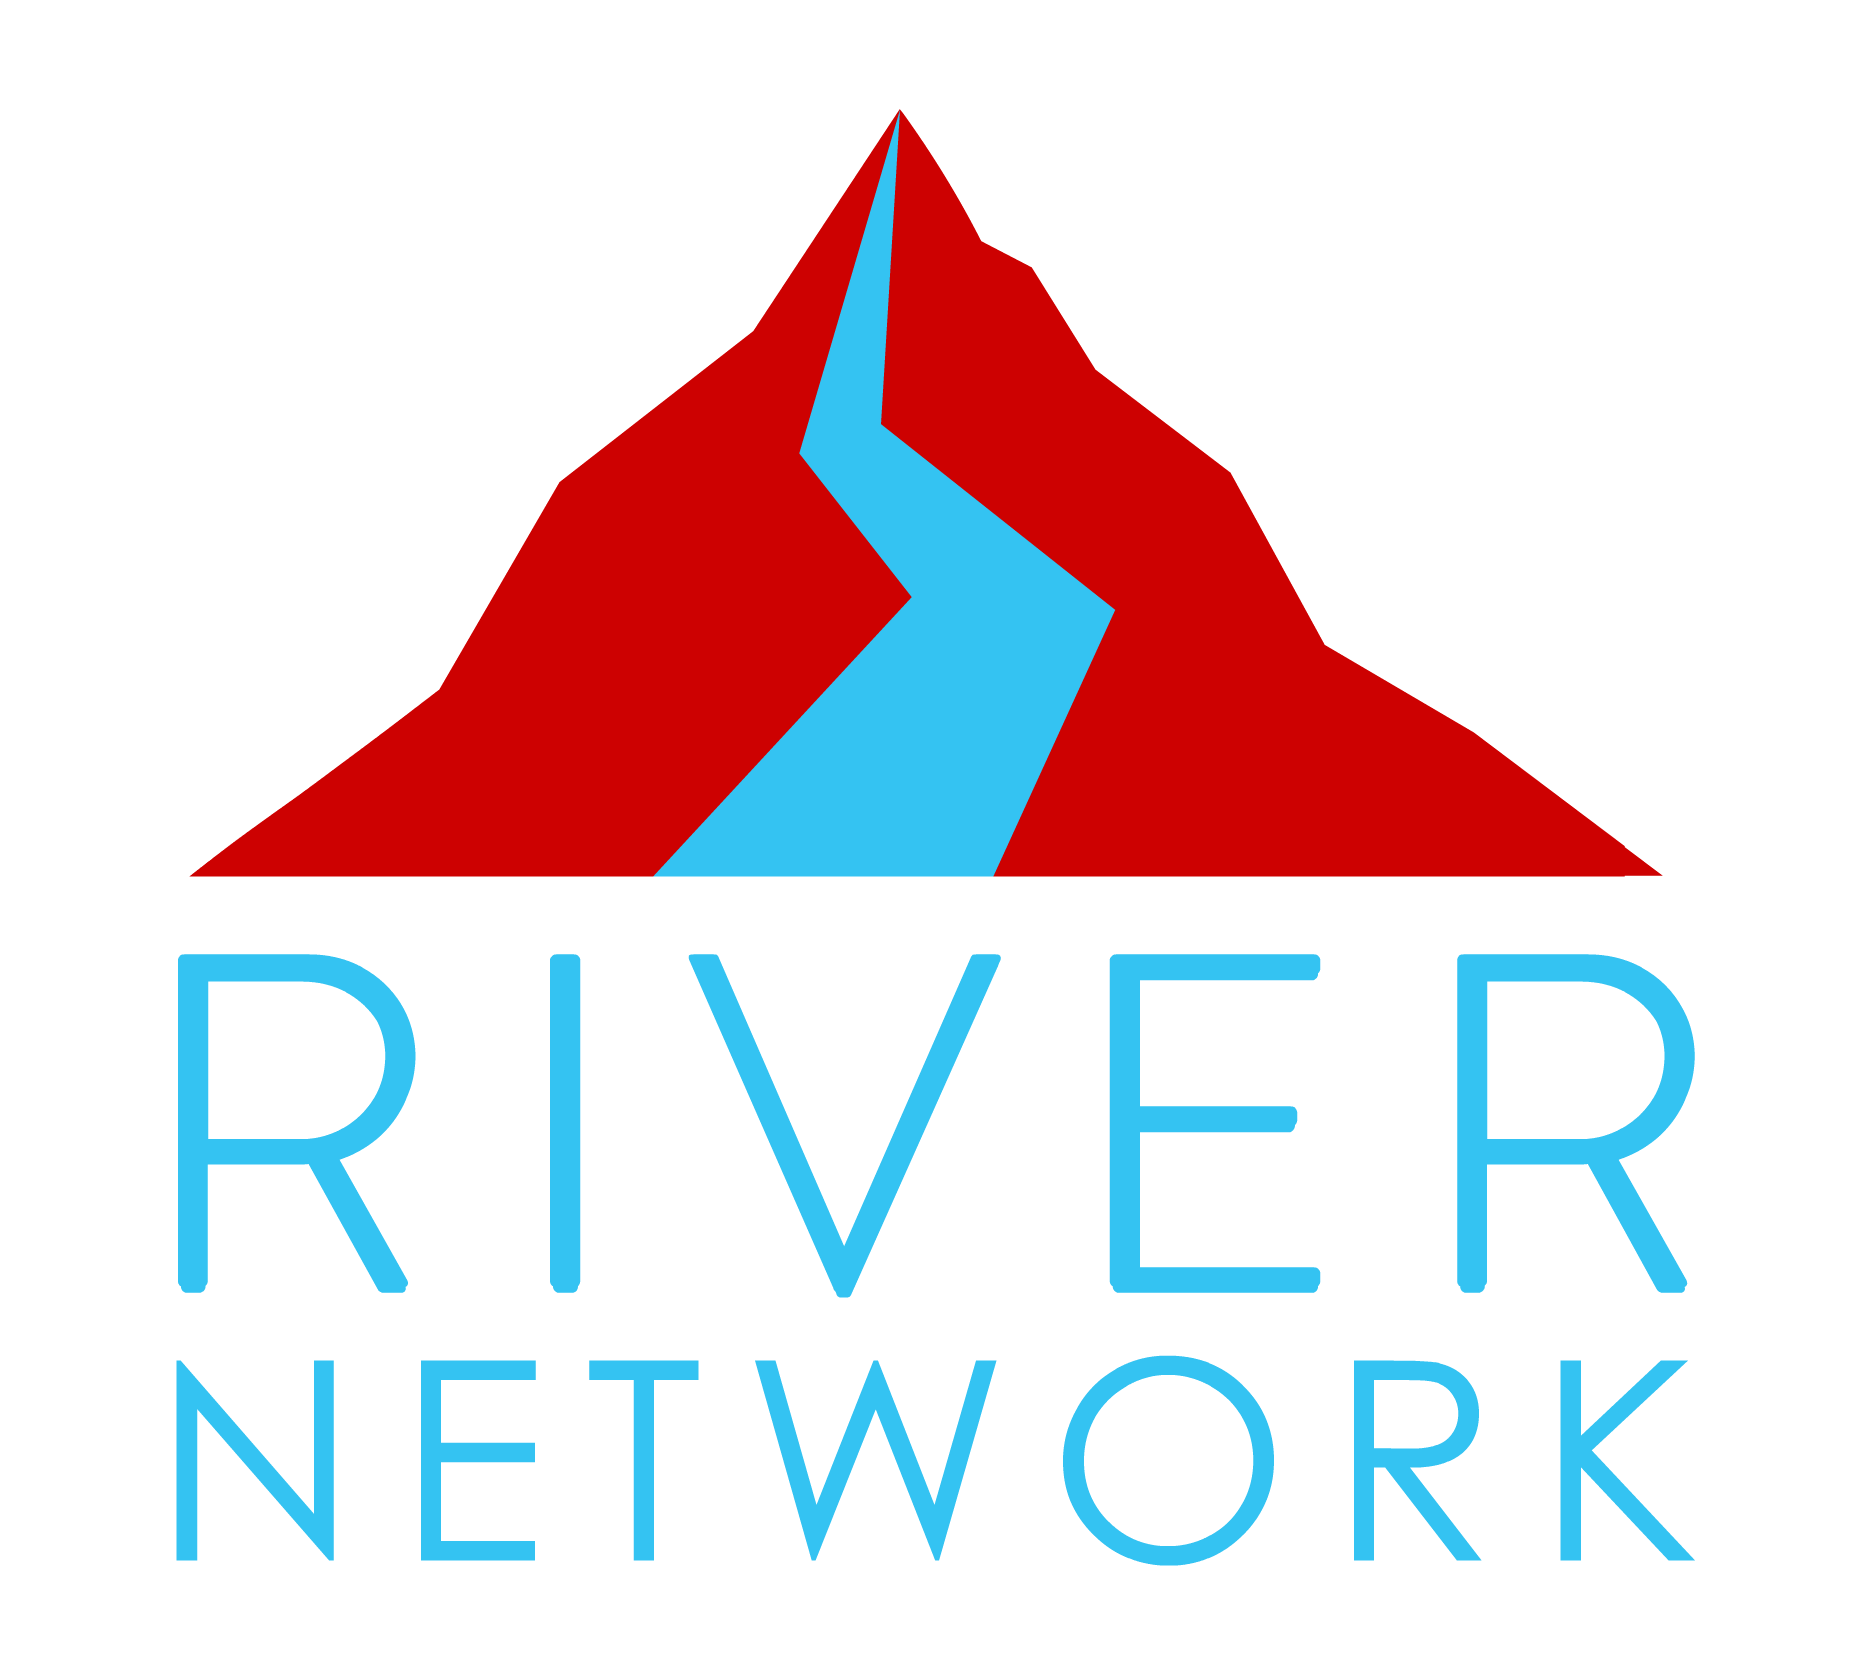 River Network (1).png